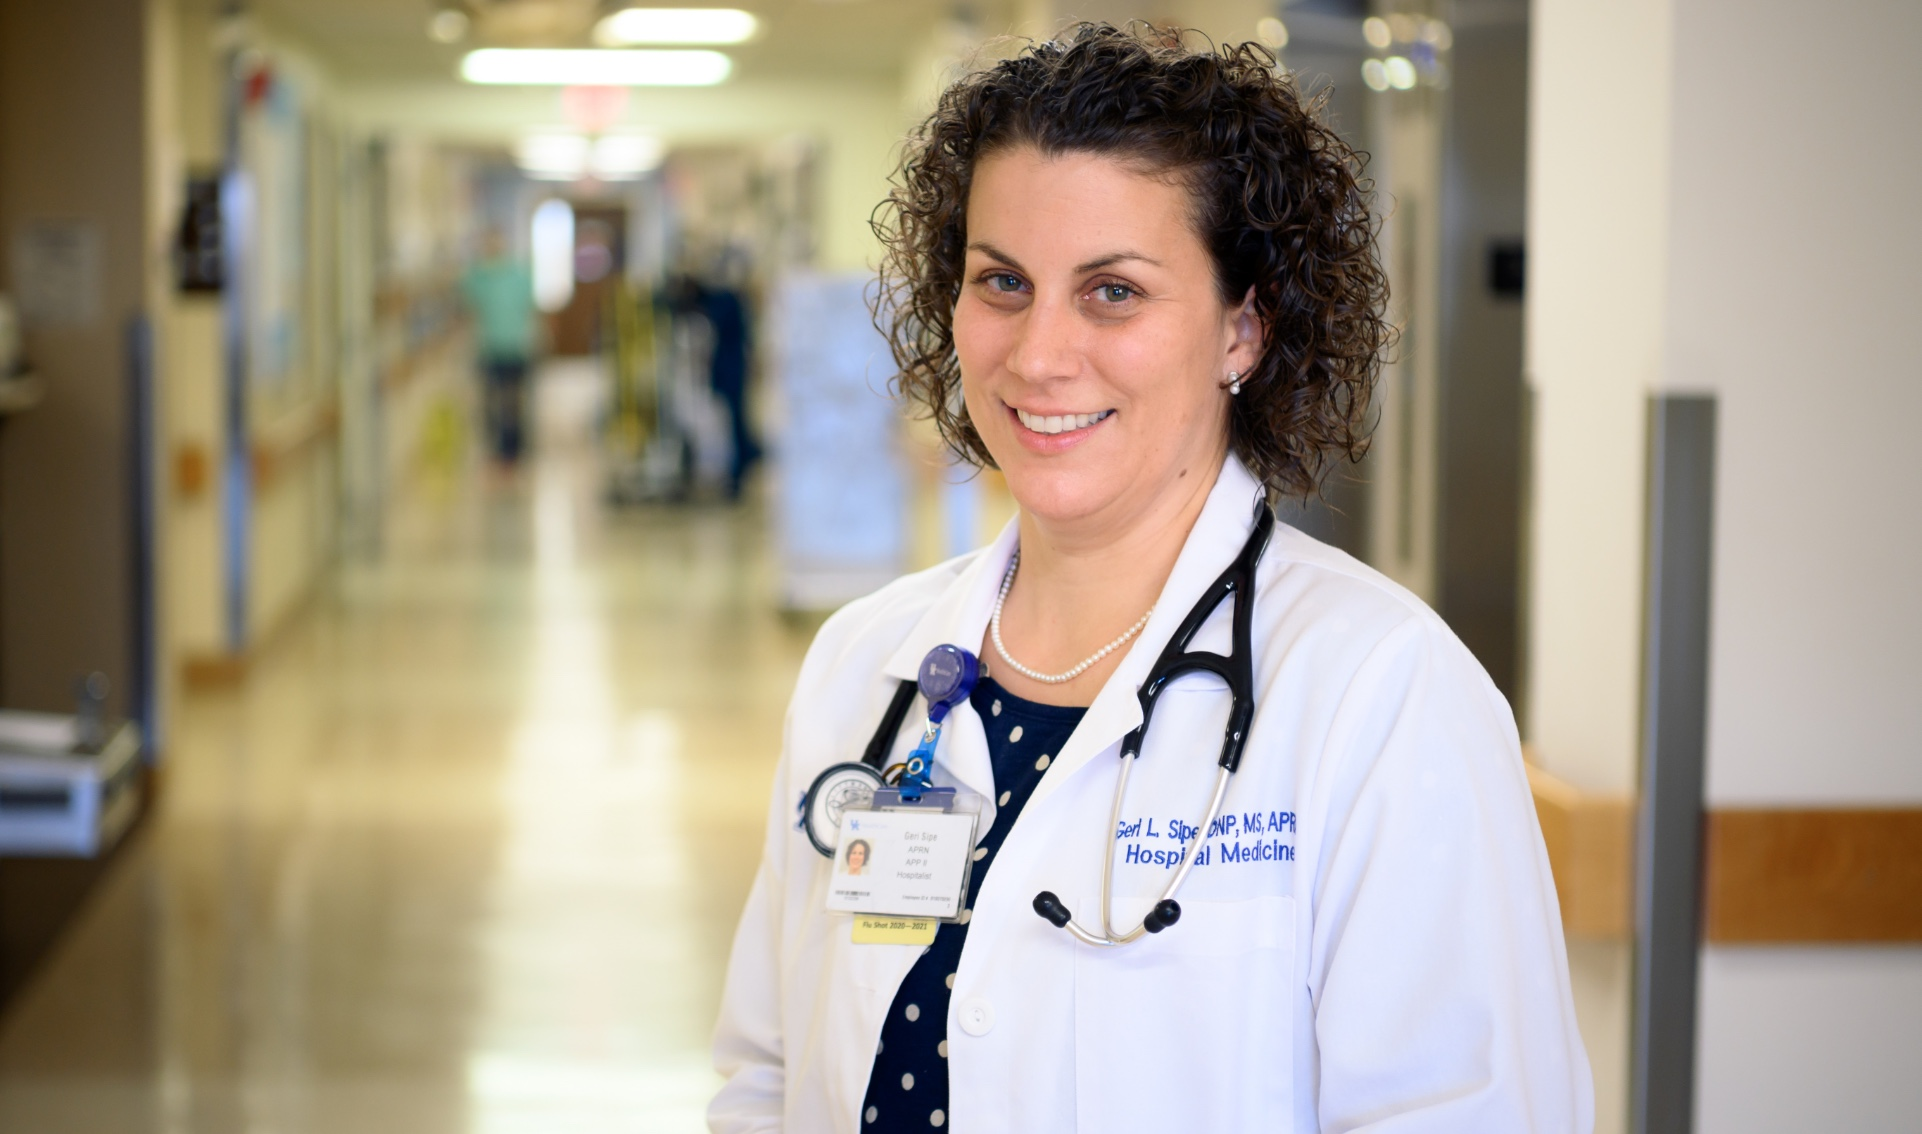 Geri stands in the hallway of the hospital. She is wearing a white coat with a stethoscope around her neck, a pearl necklace, and blue polka dot blouse.